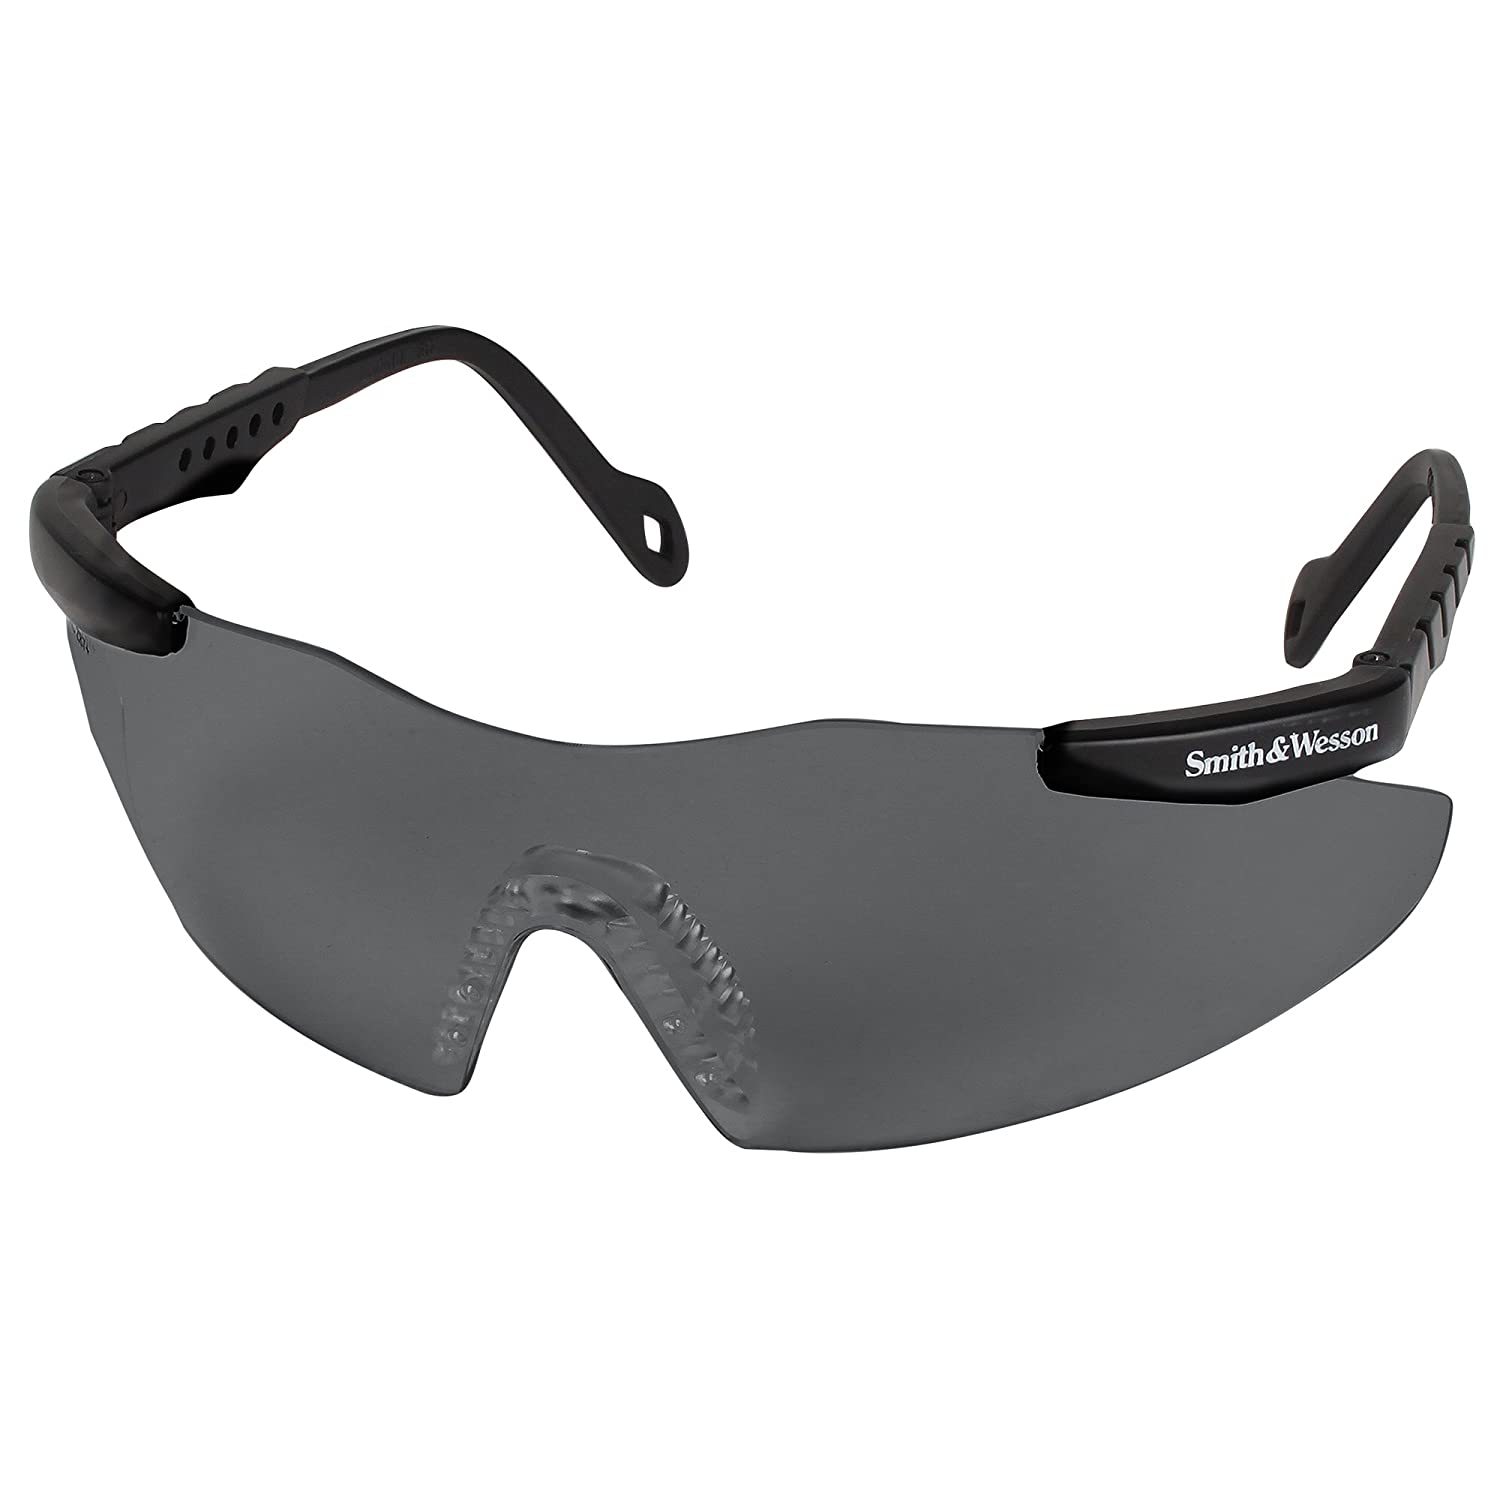 Smith and Wesson Safety Glasses (19823), Magnum 3G Safety Eyewear, Smoke Lenses with Black Frame